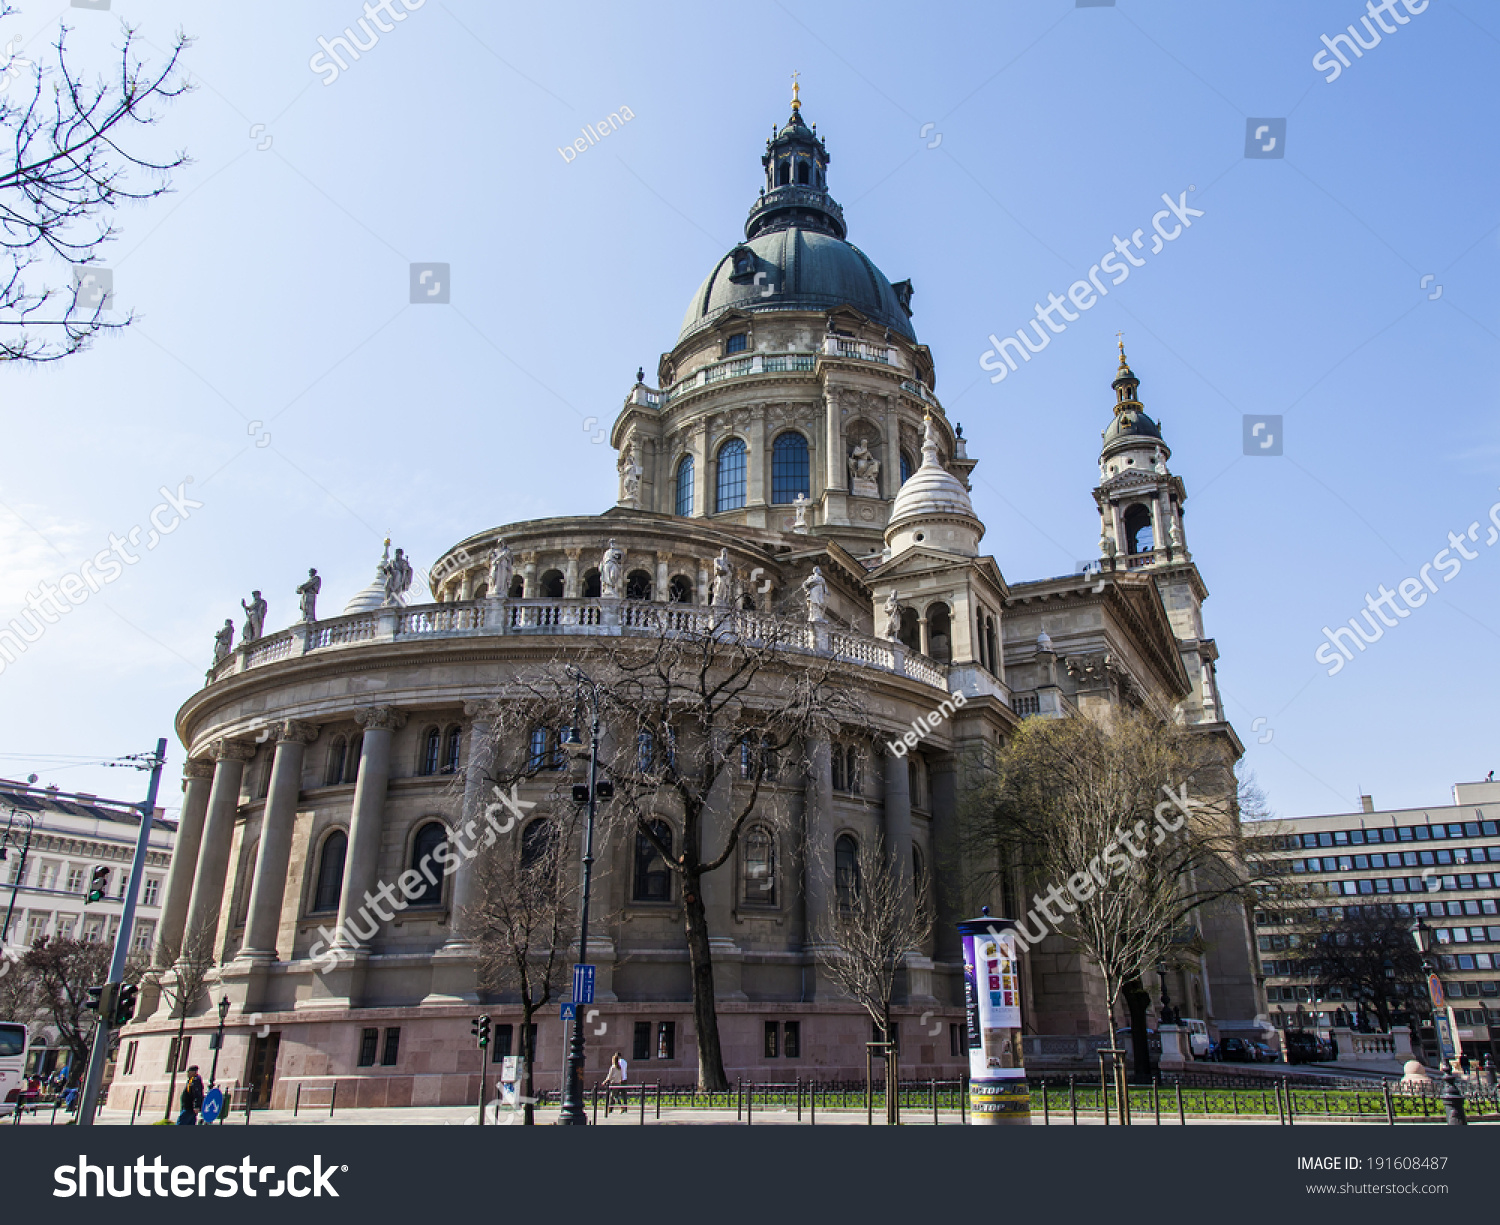 Budapest Hungary March 22 2014 Basilica Of St Stephen One Of